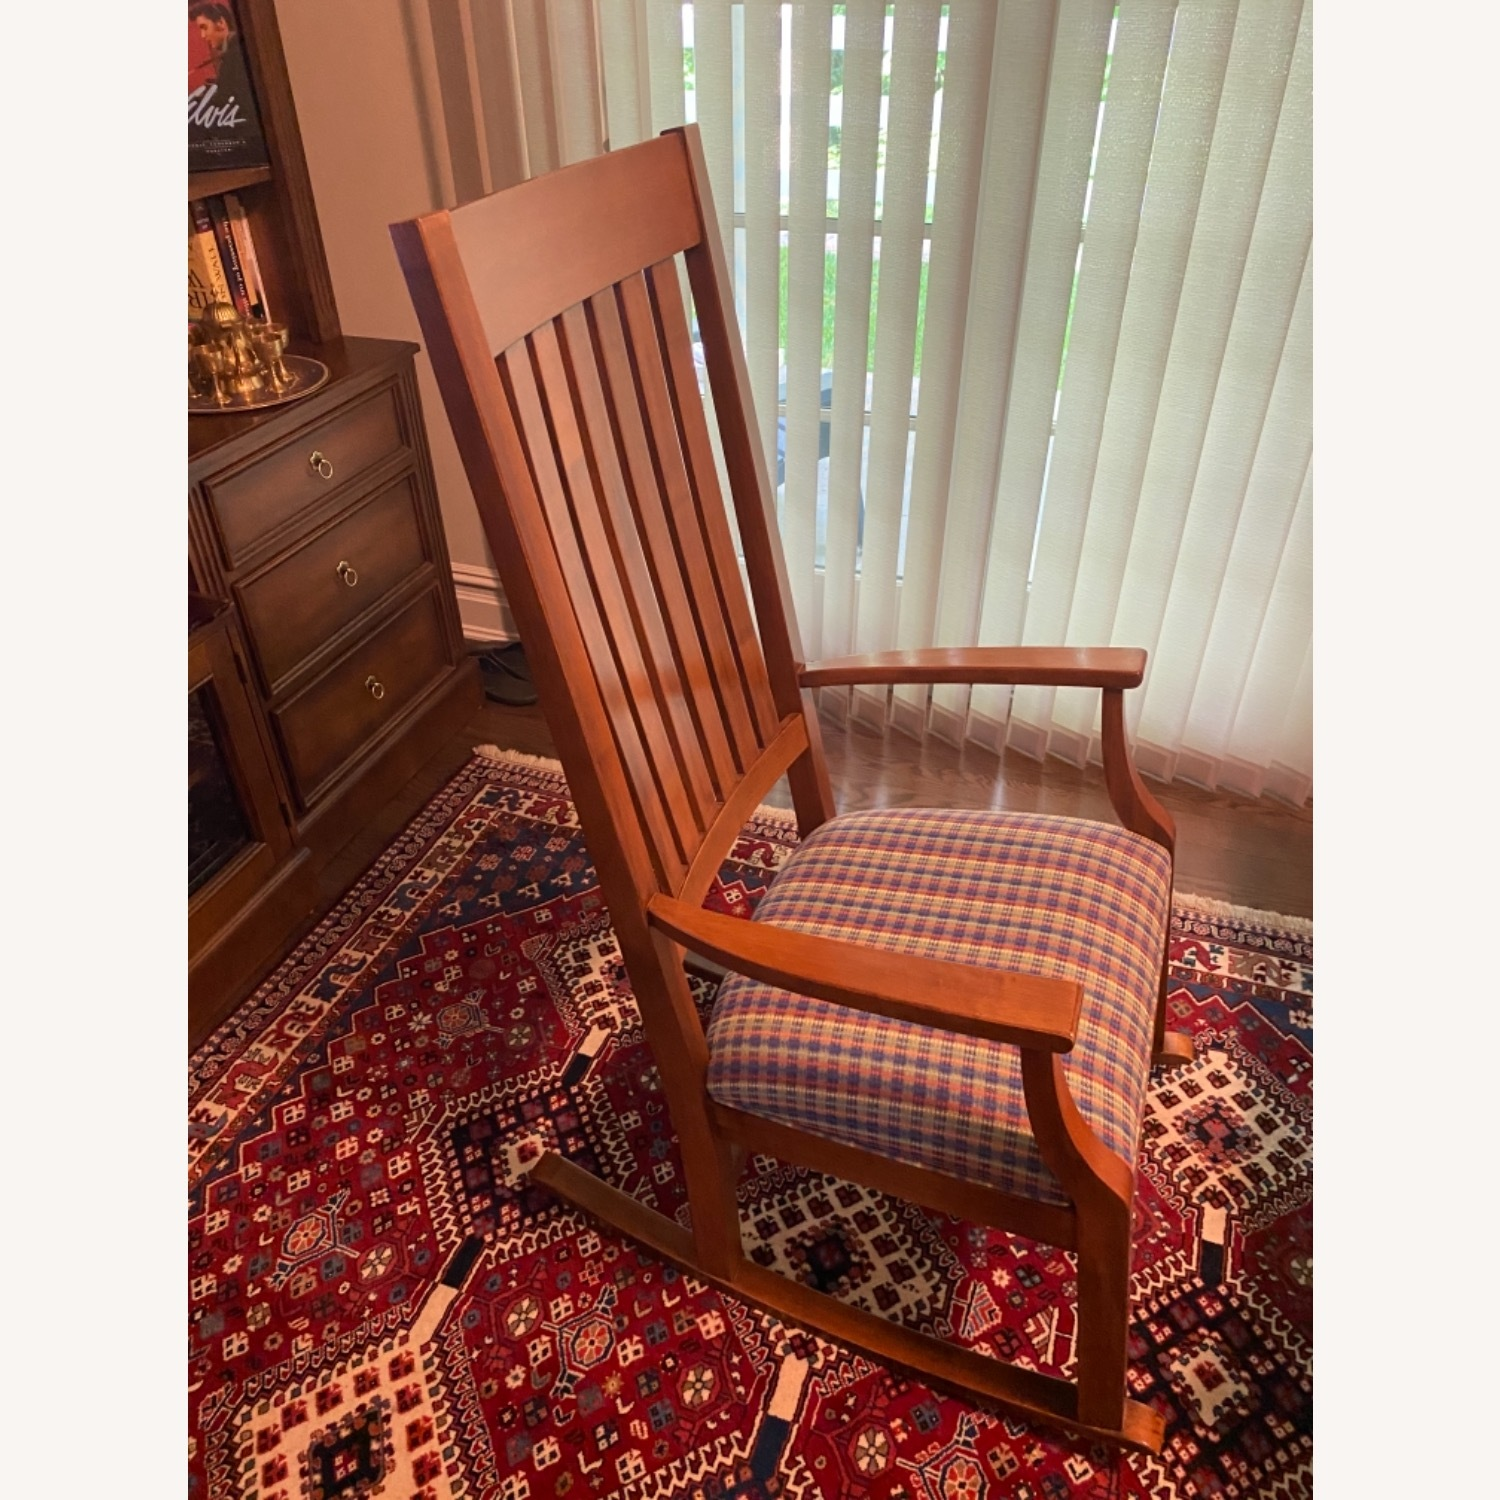 Ethan Allen Wood and cotton Fabric Chair - image-2